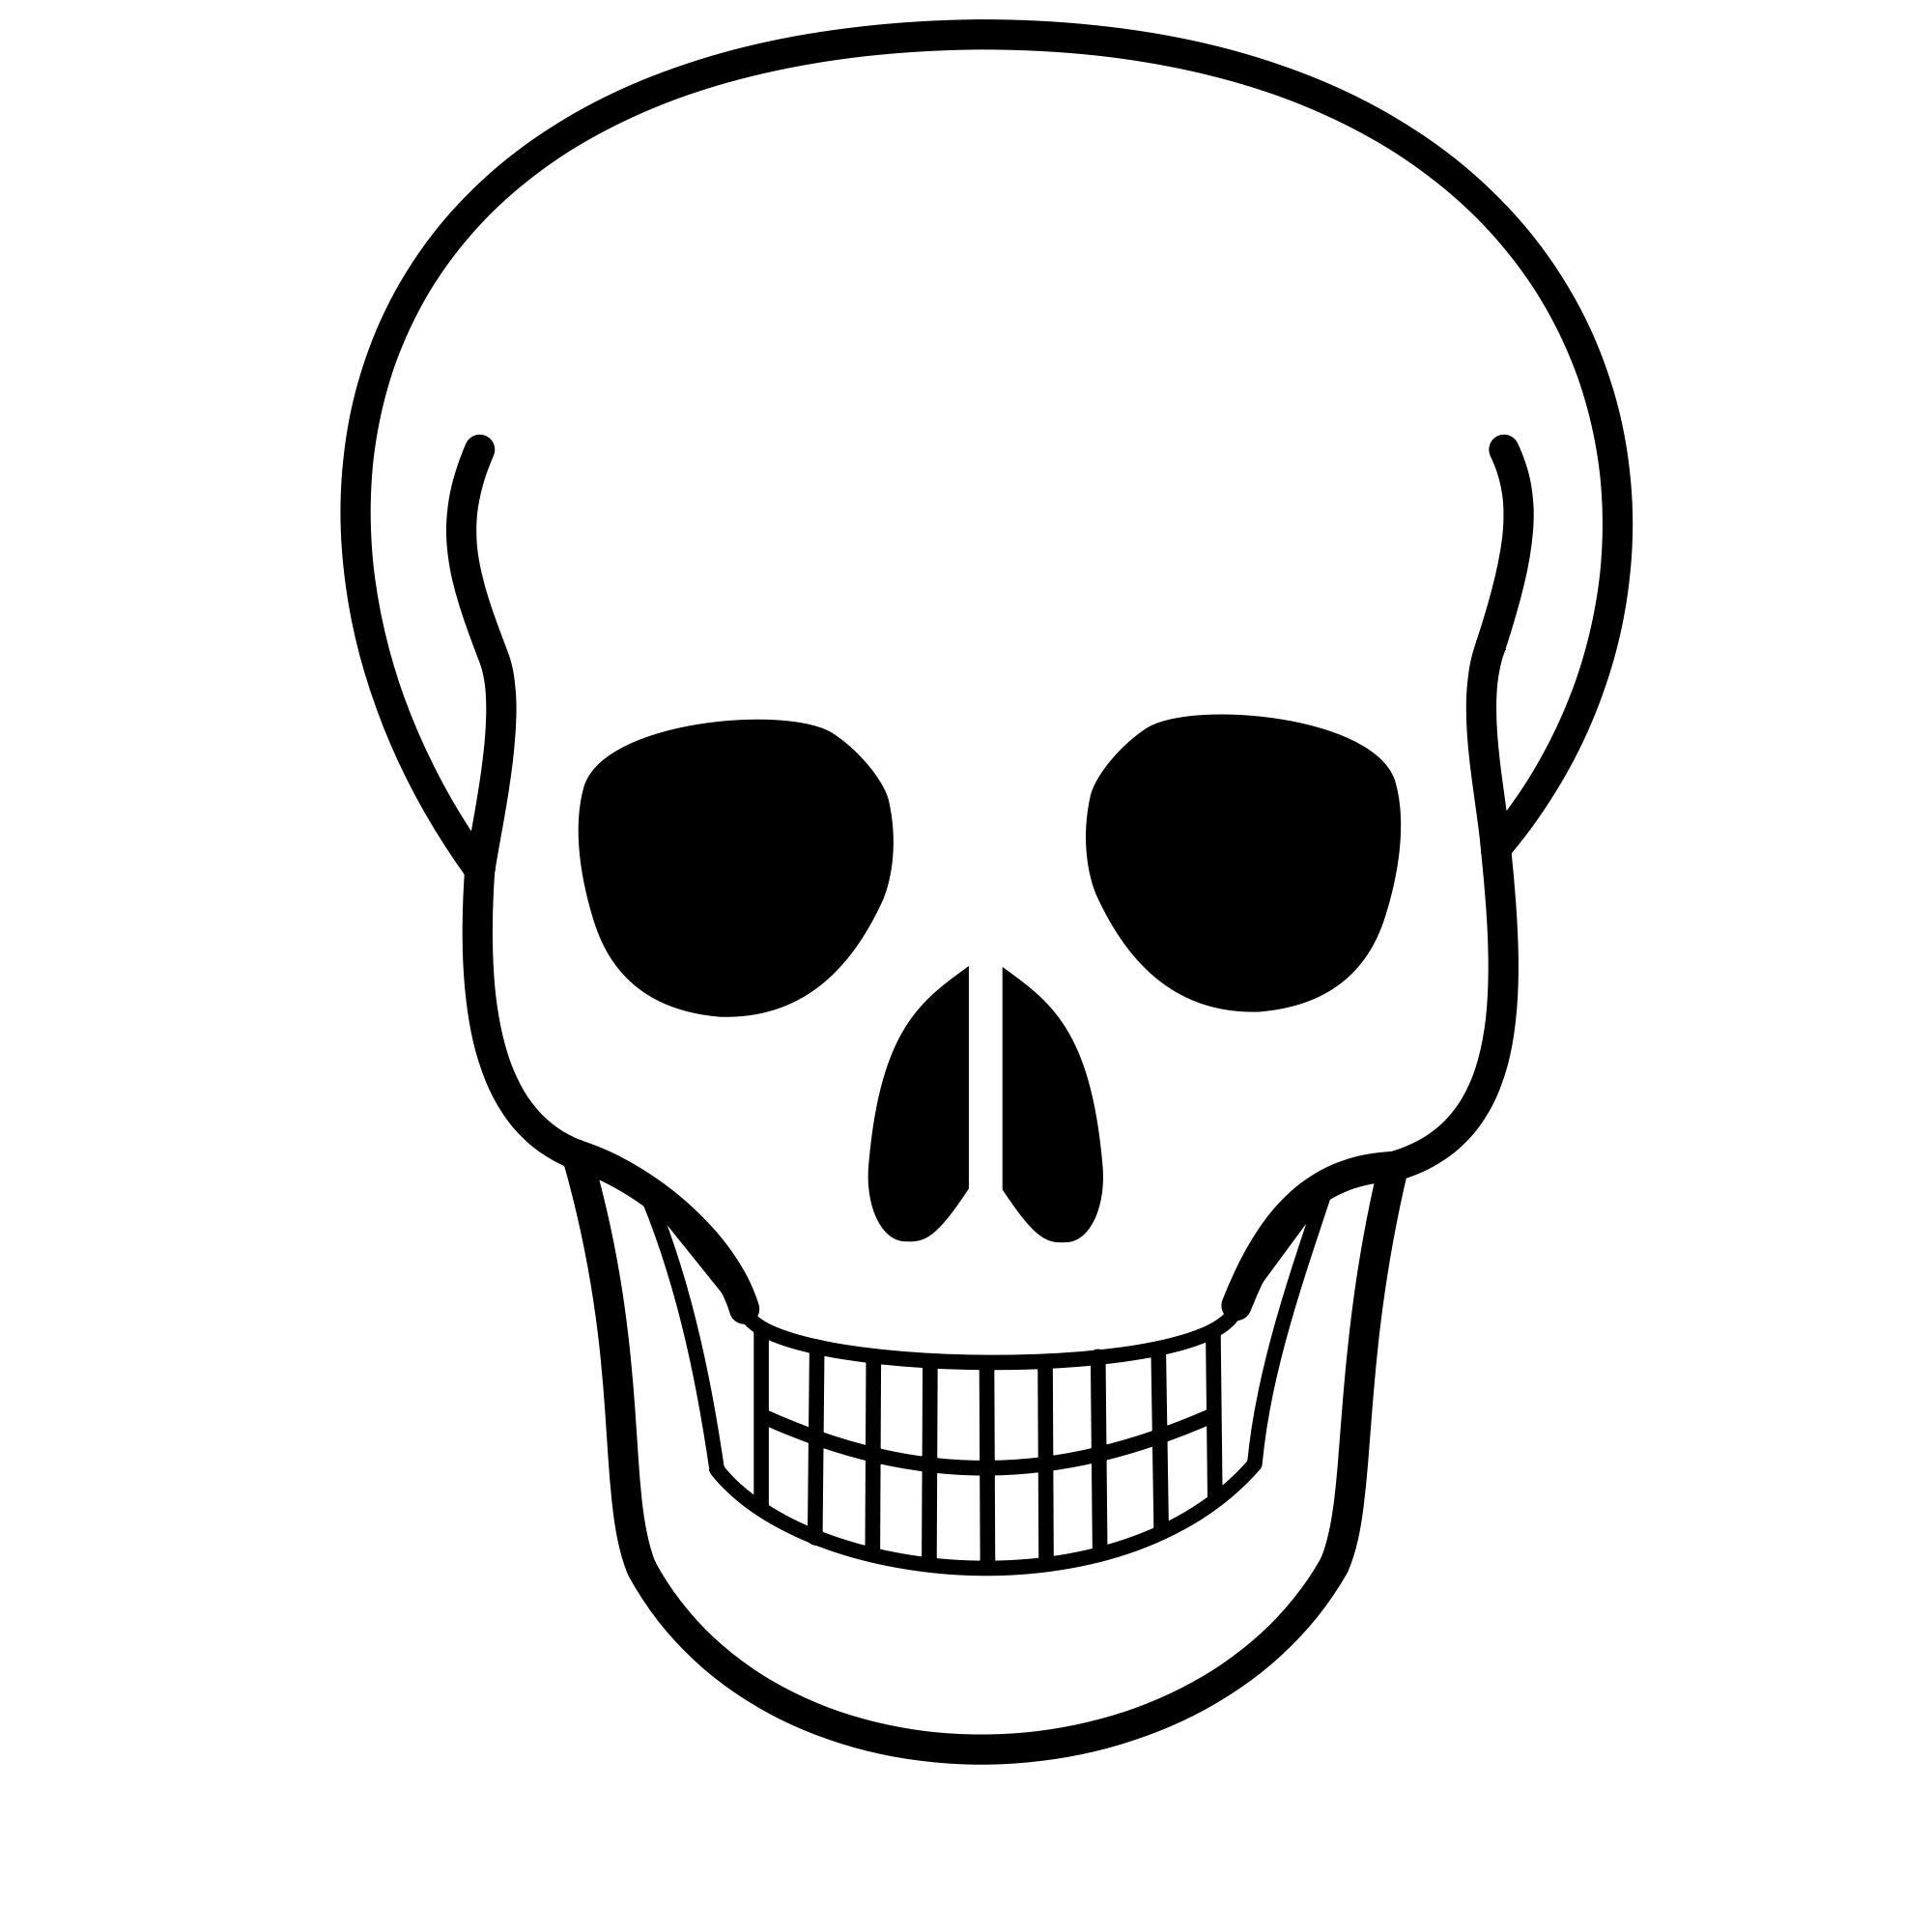 Skull clip art clipart images gallery for free download.